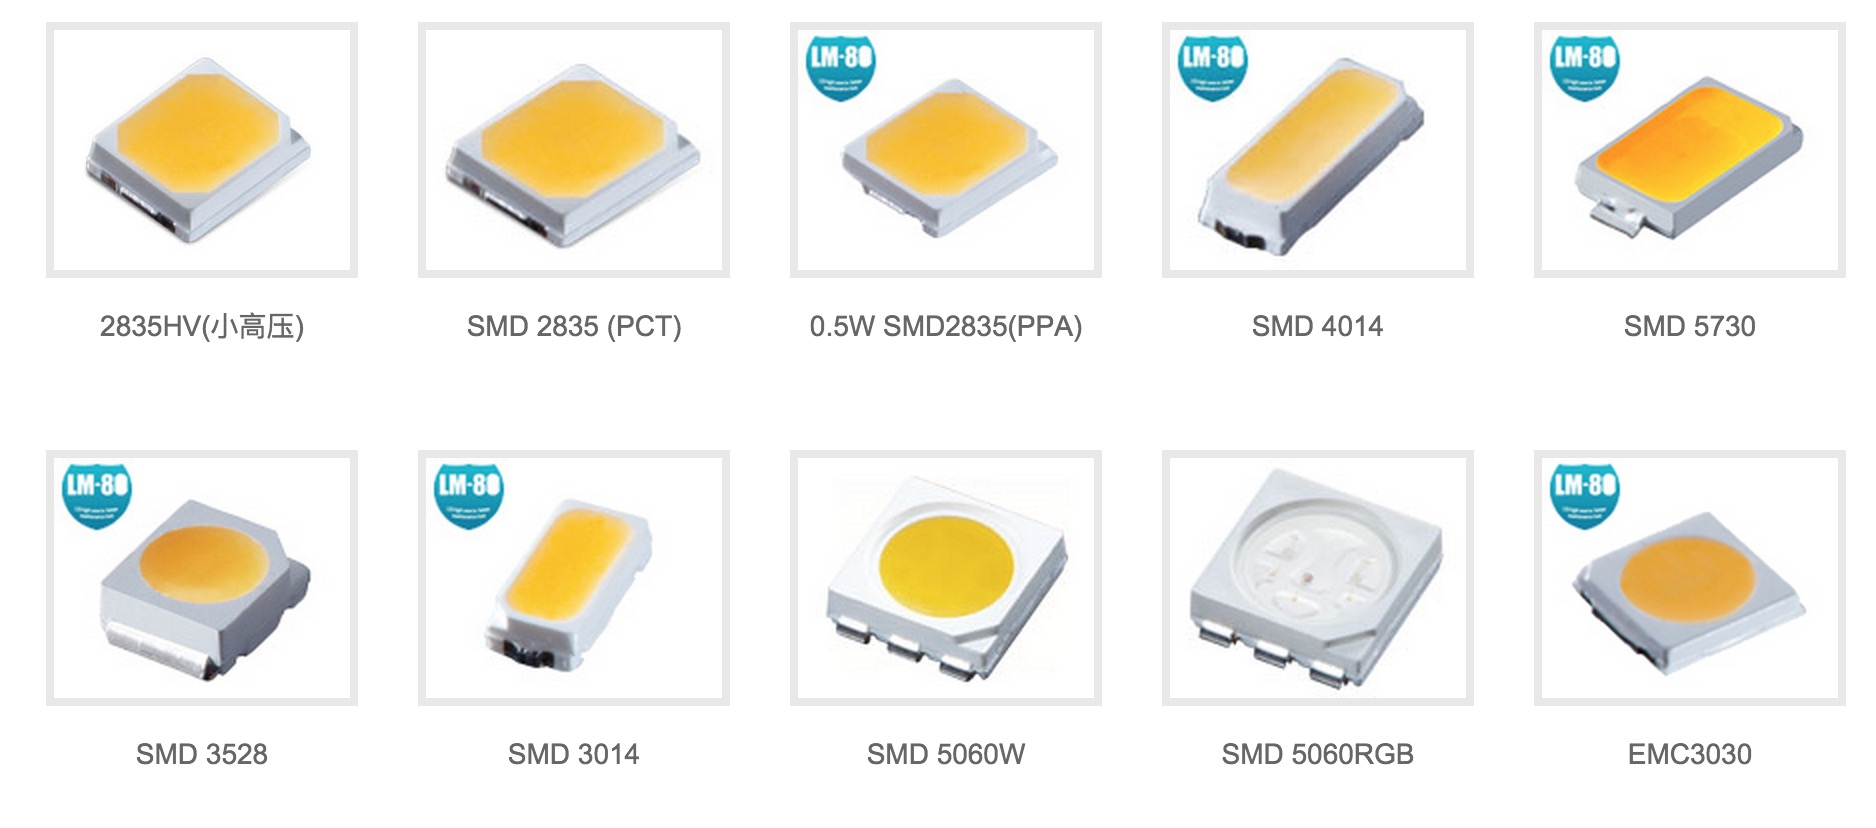 Smd Led  parison on brightness of light bulb chart